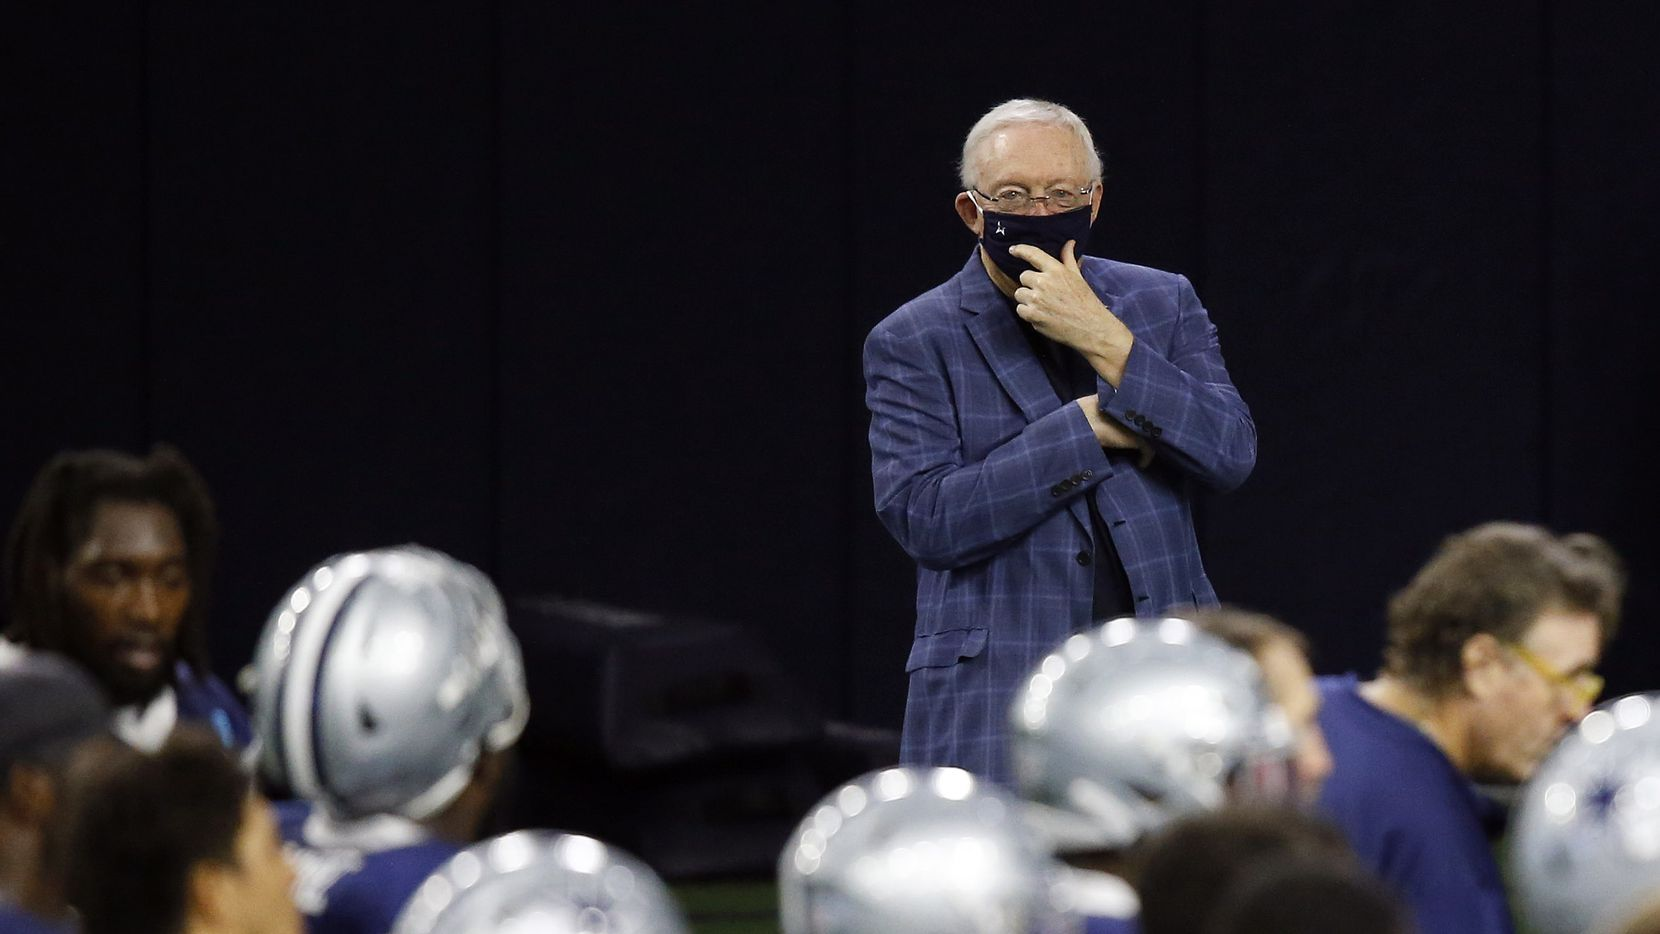 Dallas Cowboys owner and general manager Jerry Jones watches practice from the sidelines during training camp at the Dallas Cowboys headquarters at The Star in Frisco, Texas on Tuesday, August 25, 2020. (Vernon Bryant/The Dallas Morning News)